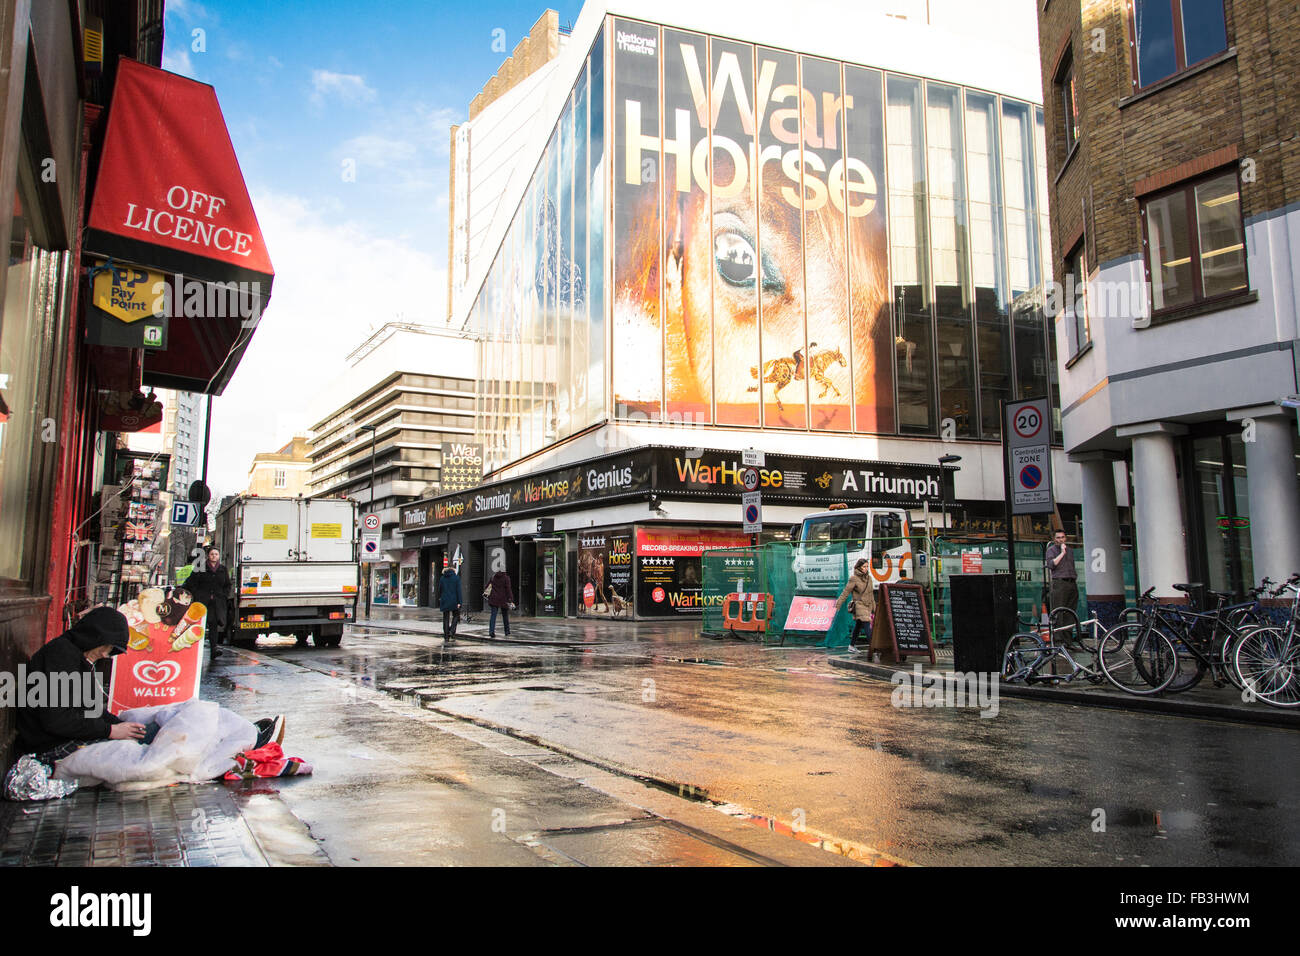 Homeless man huddled under awning in wet London street outside the New London Theatre on Drury Lane, which is showing - Stock Image